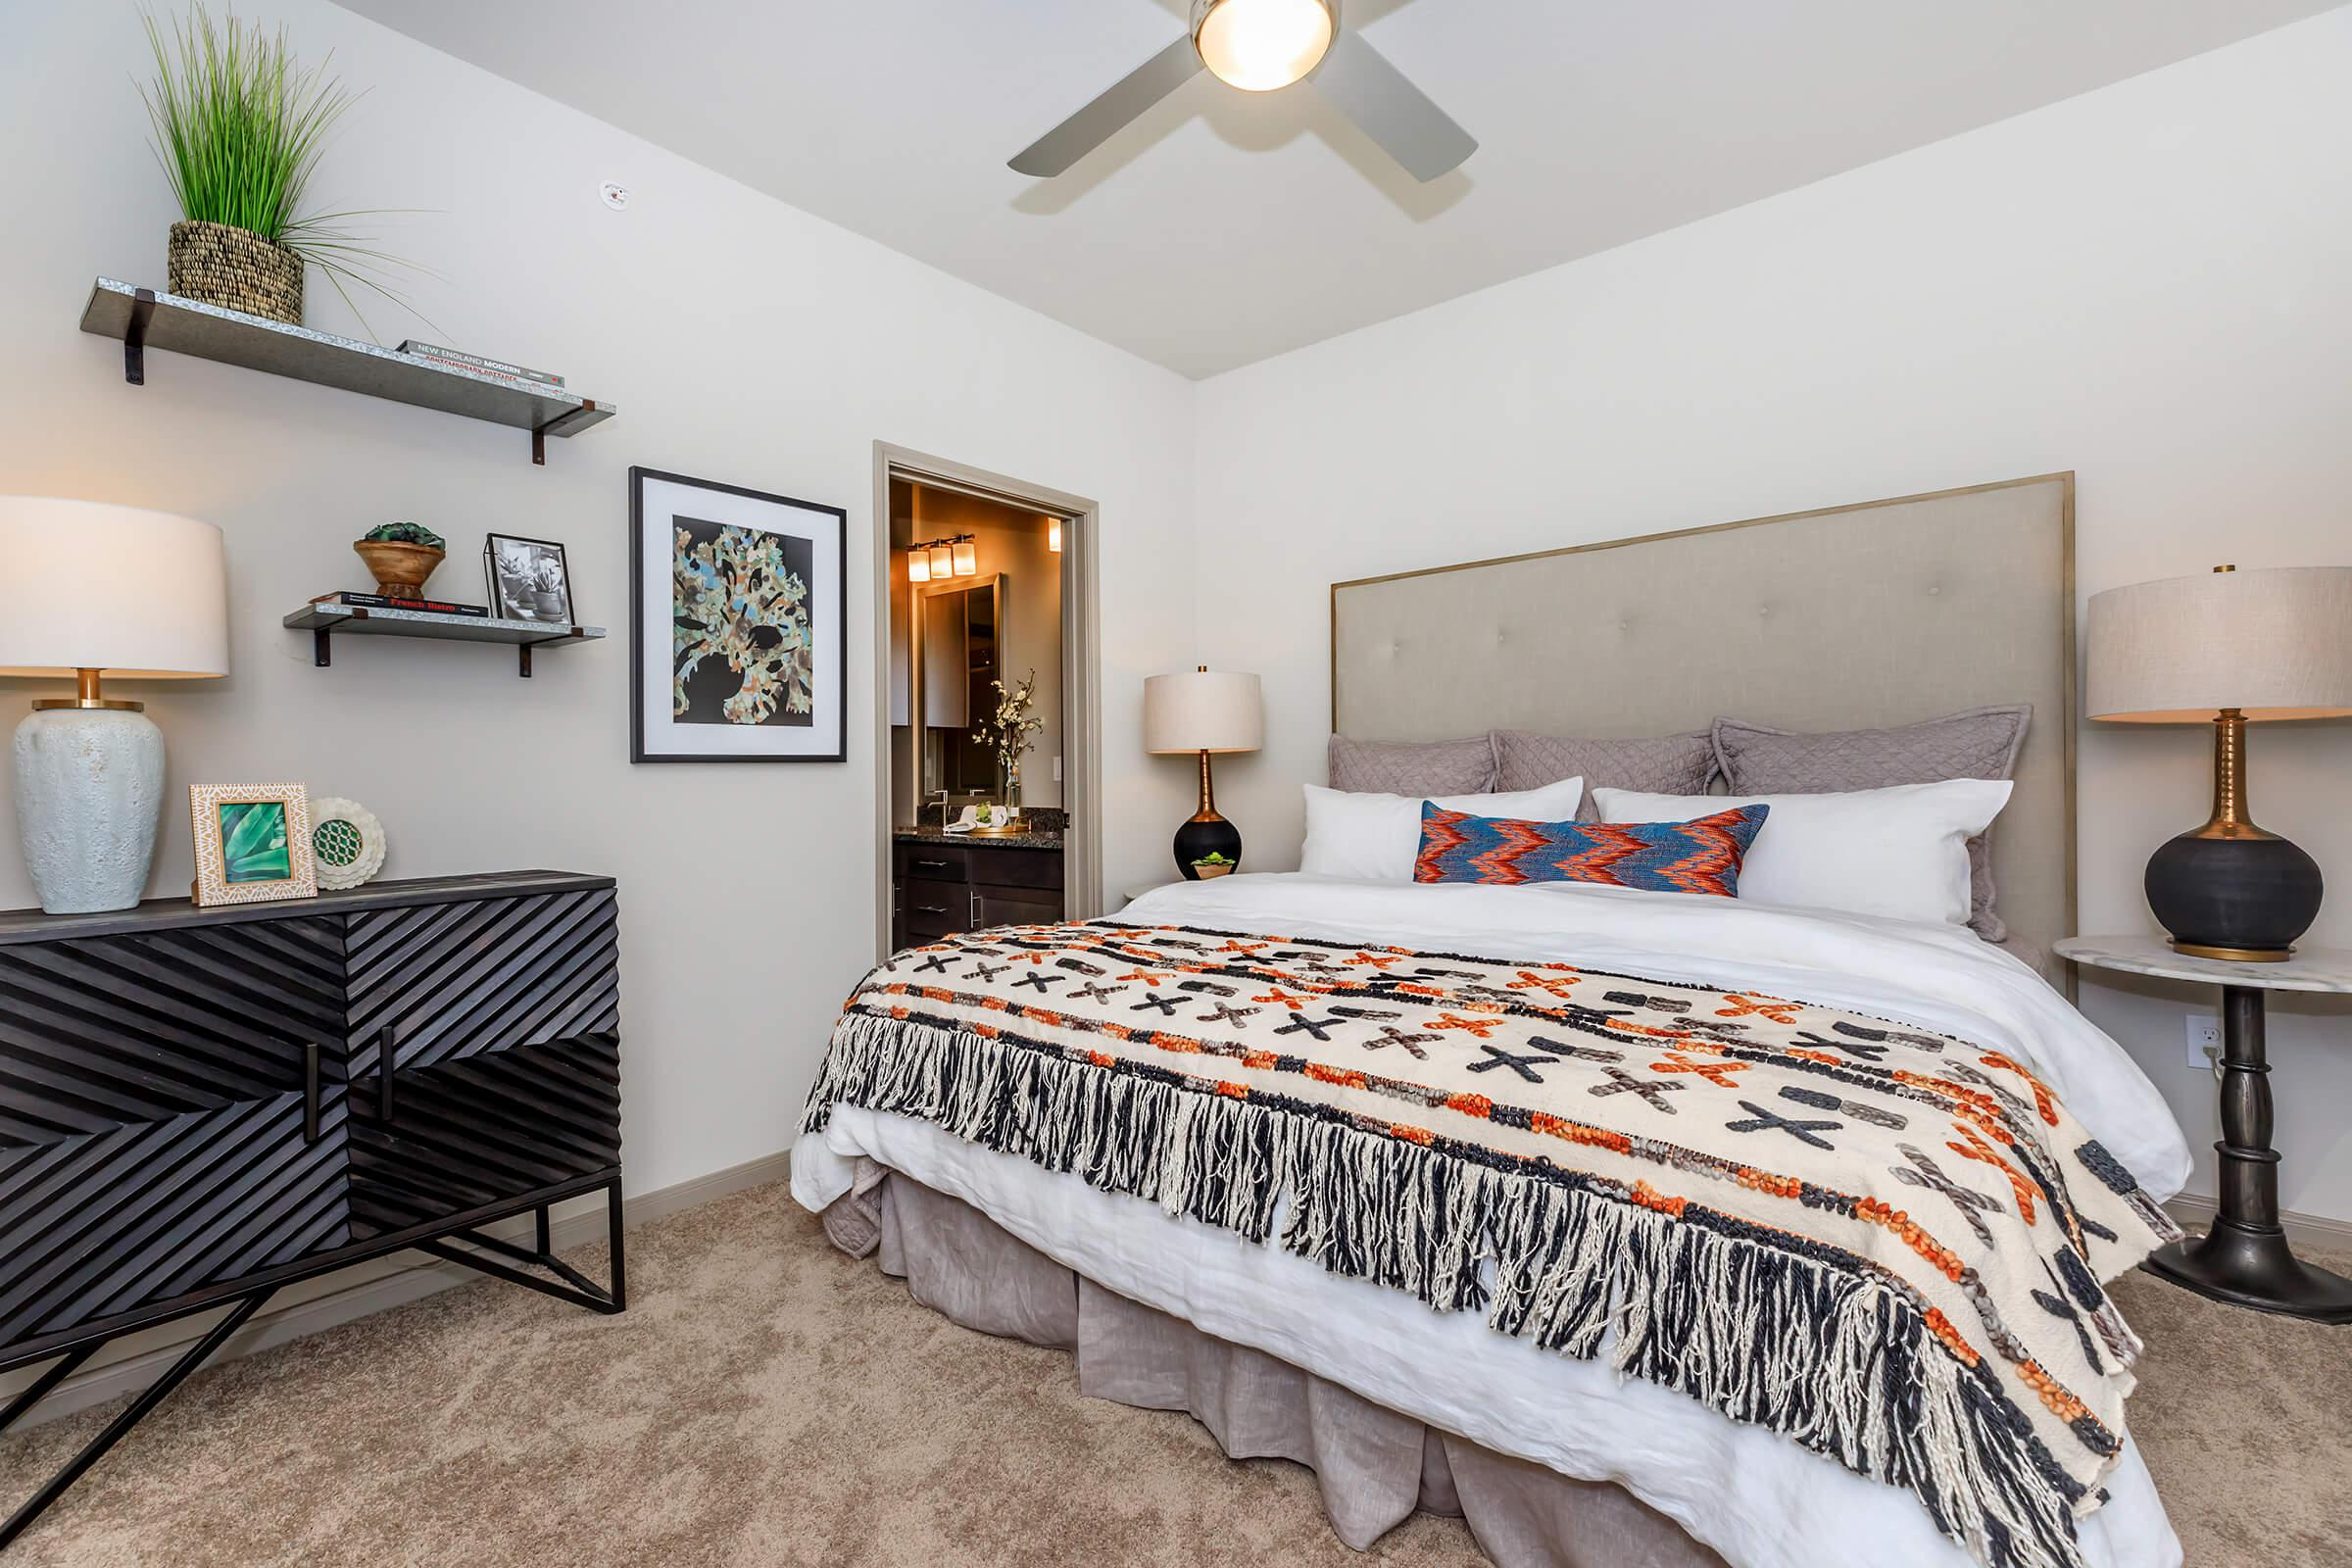 Two bedroom apartments in Humble Texas